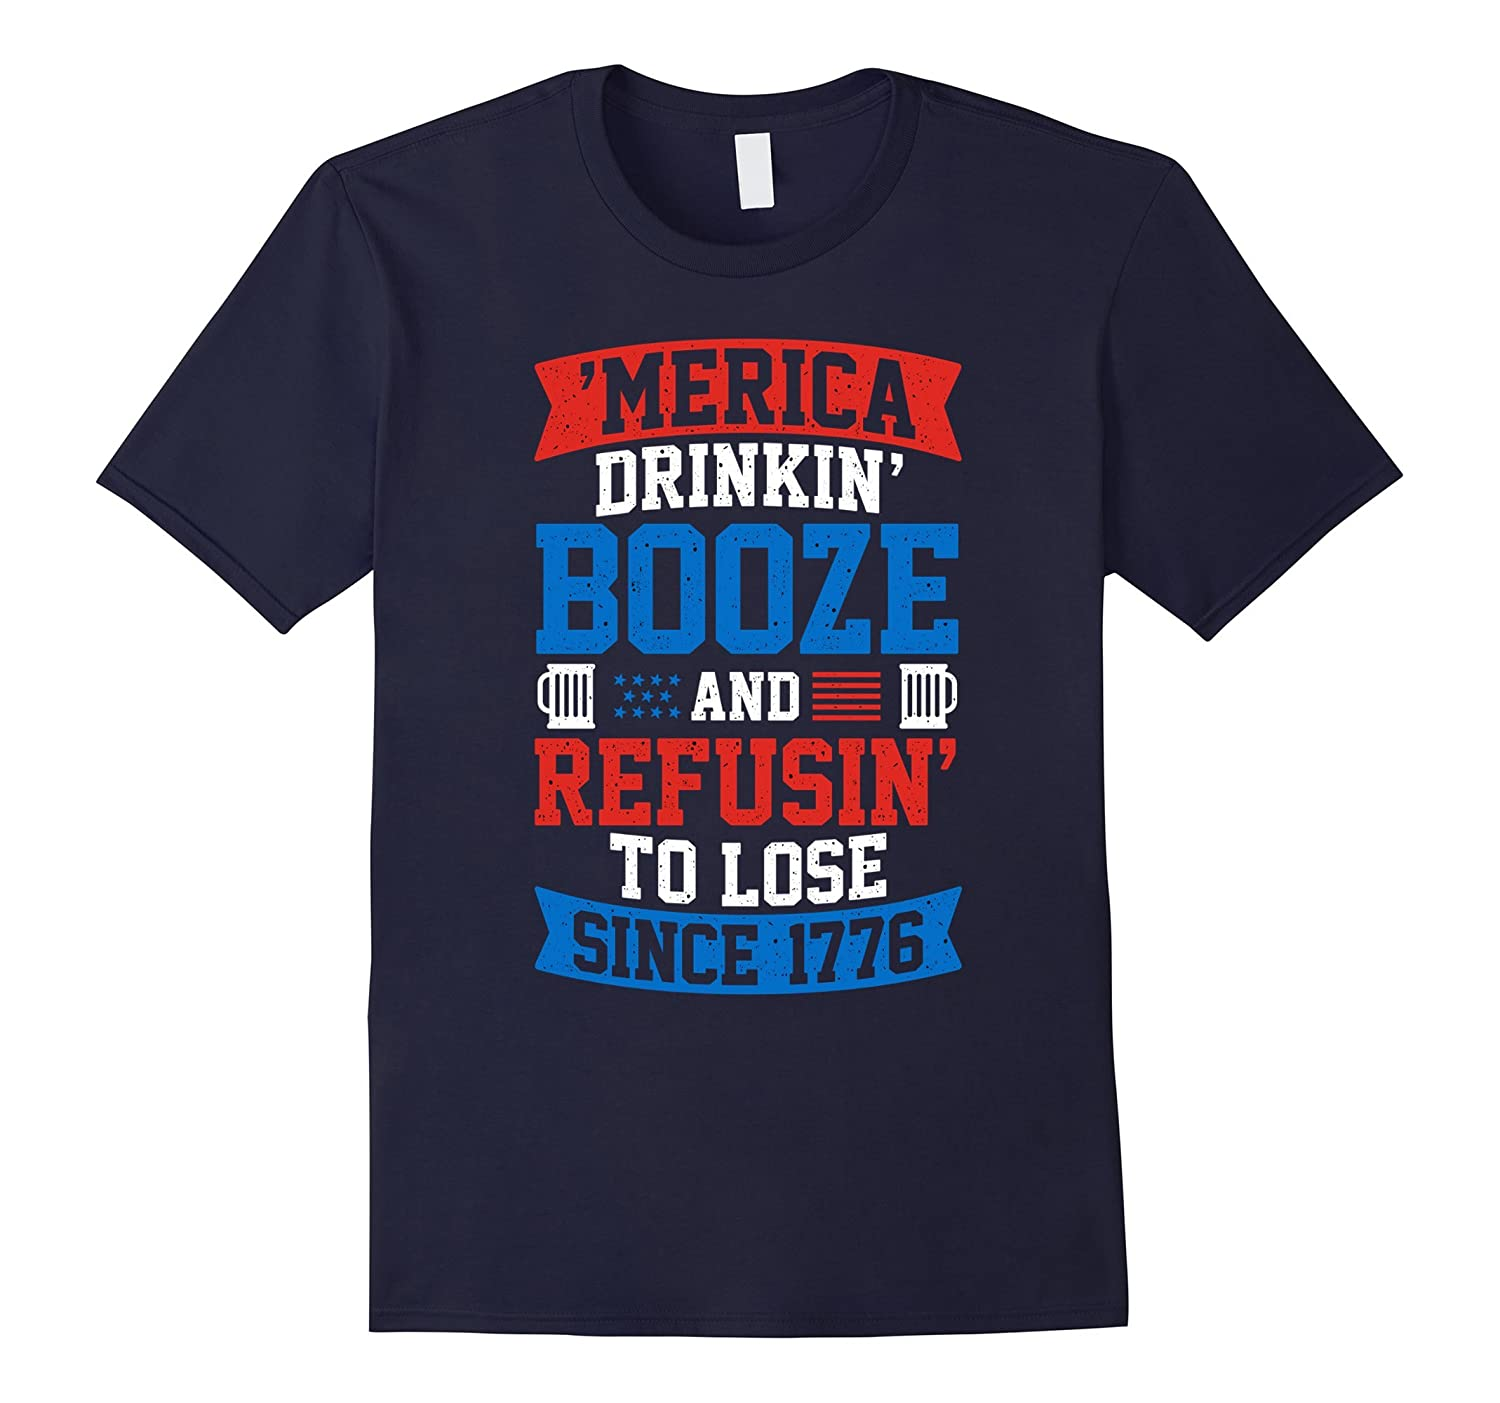 'Merica Drinkin' Booze And Refusin' To Lose T-Shirt-Art